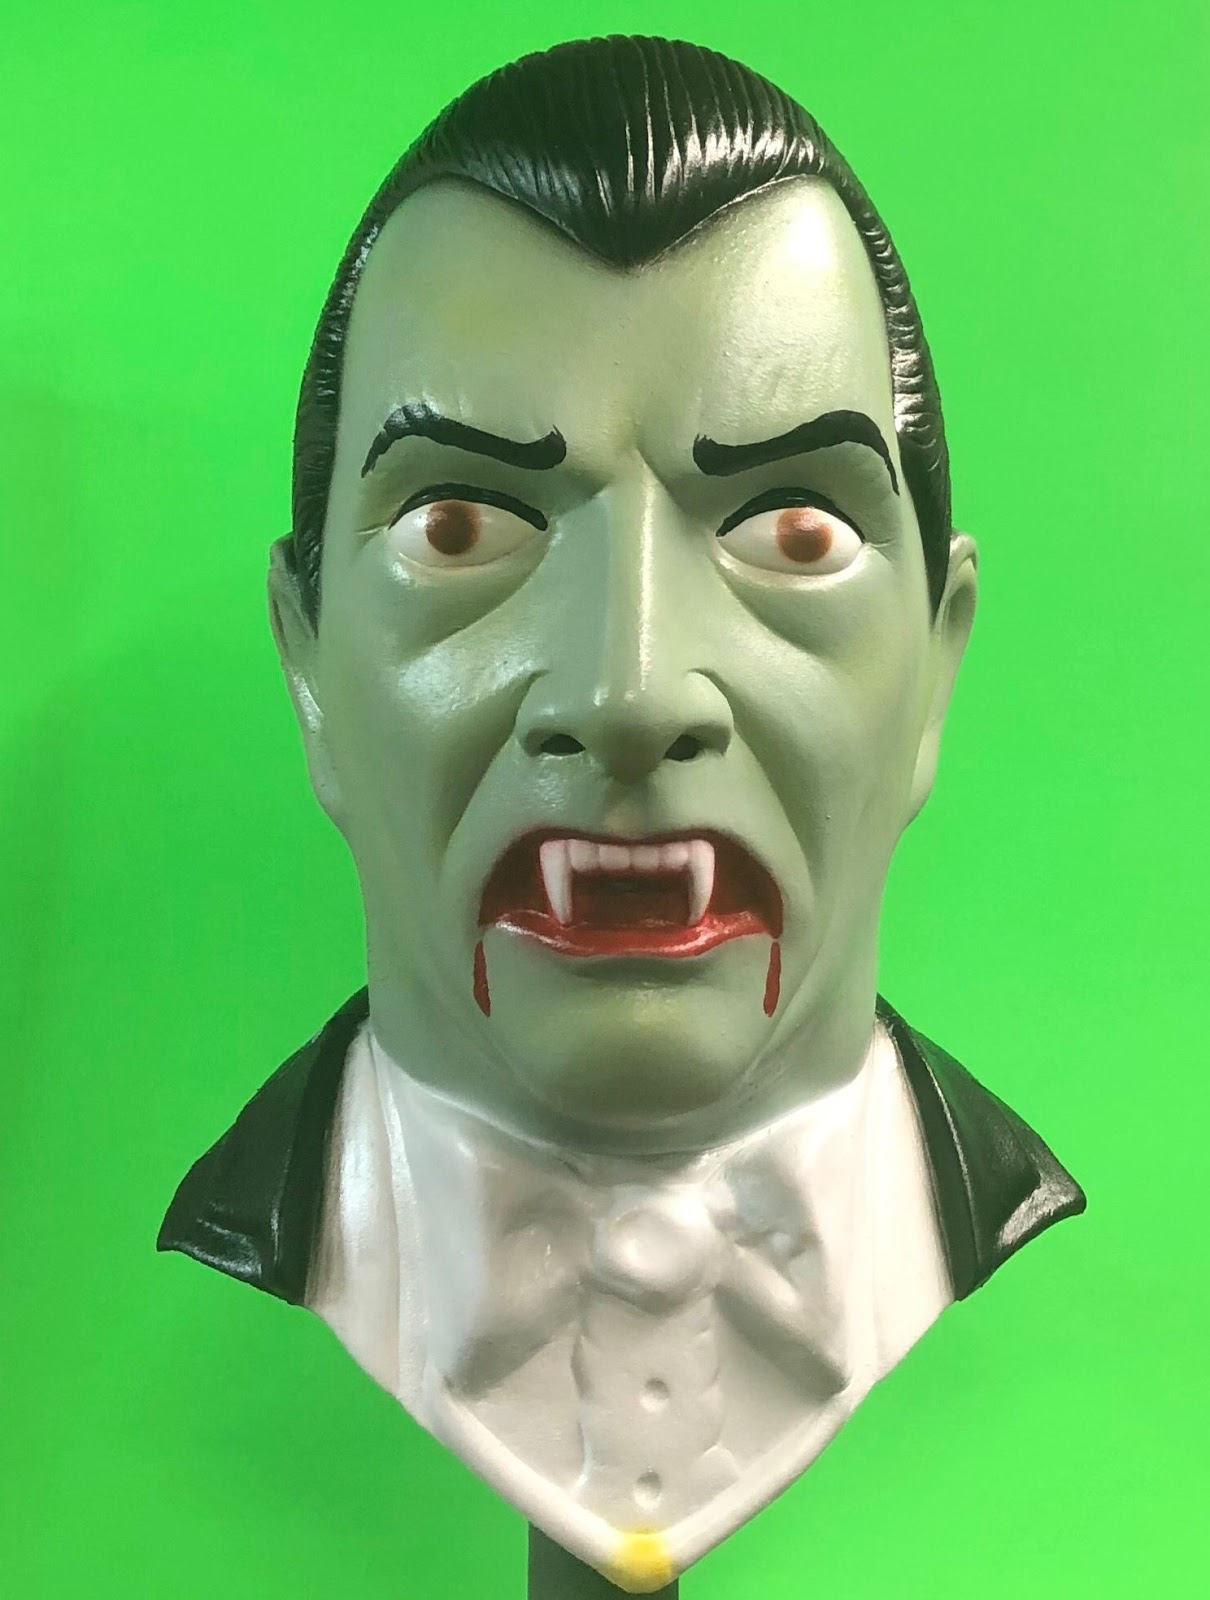 [News] Last Chance for LootCrate's Dracula Mask